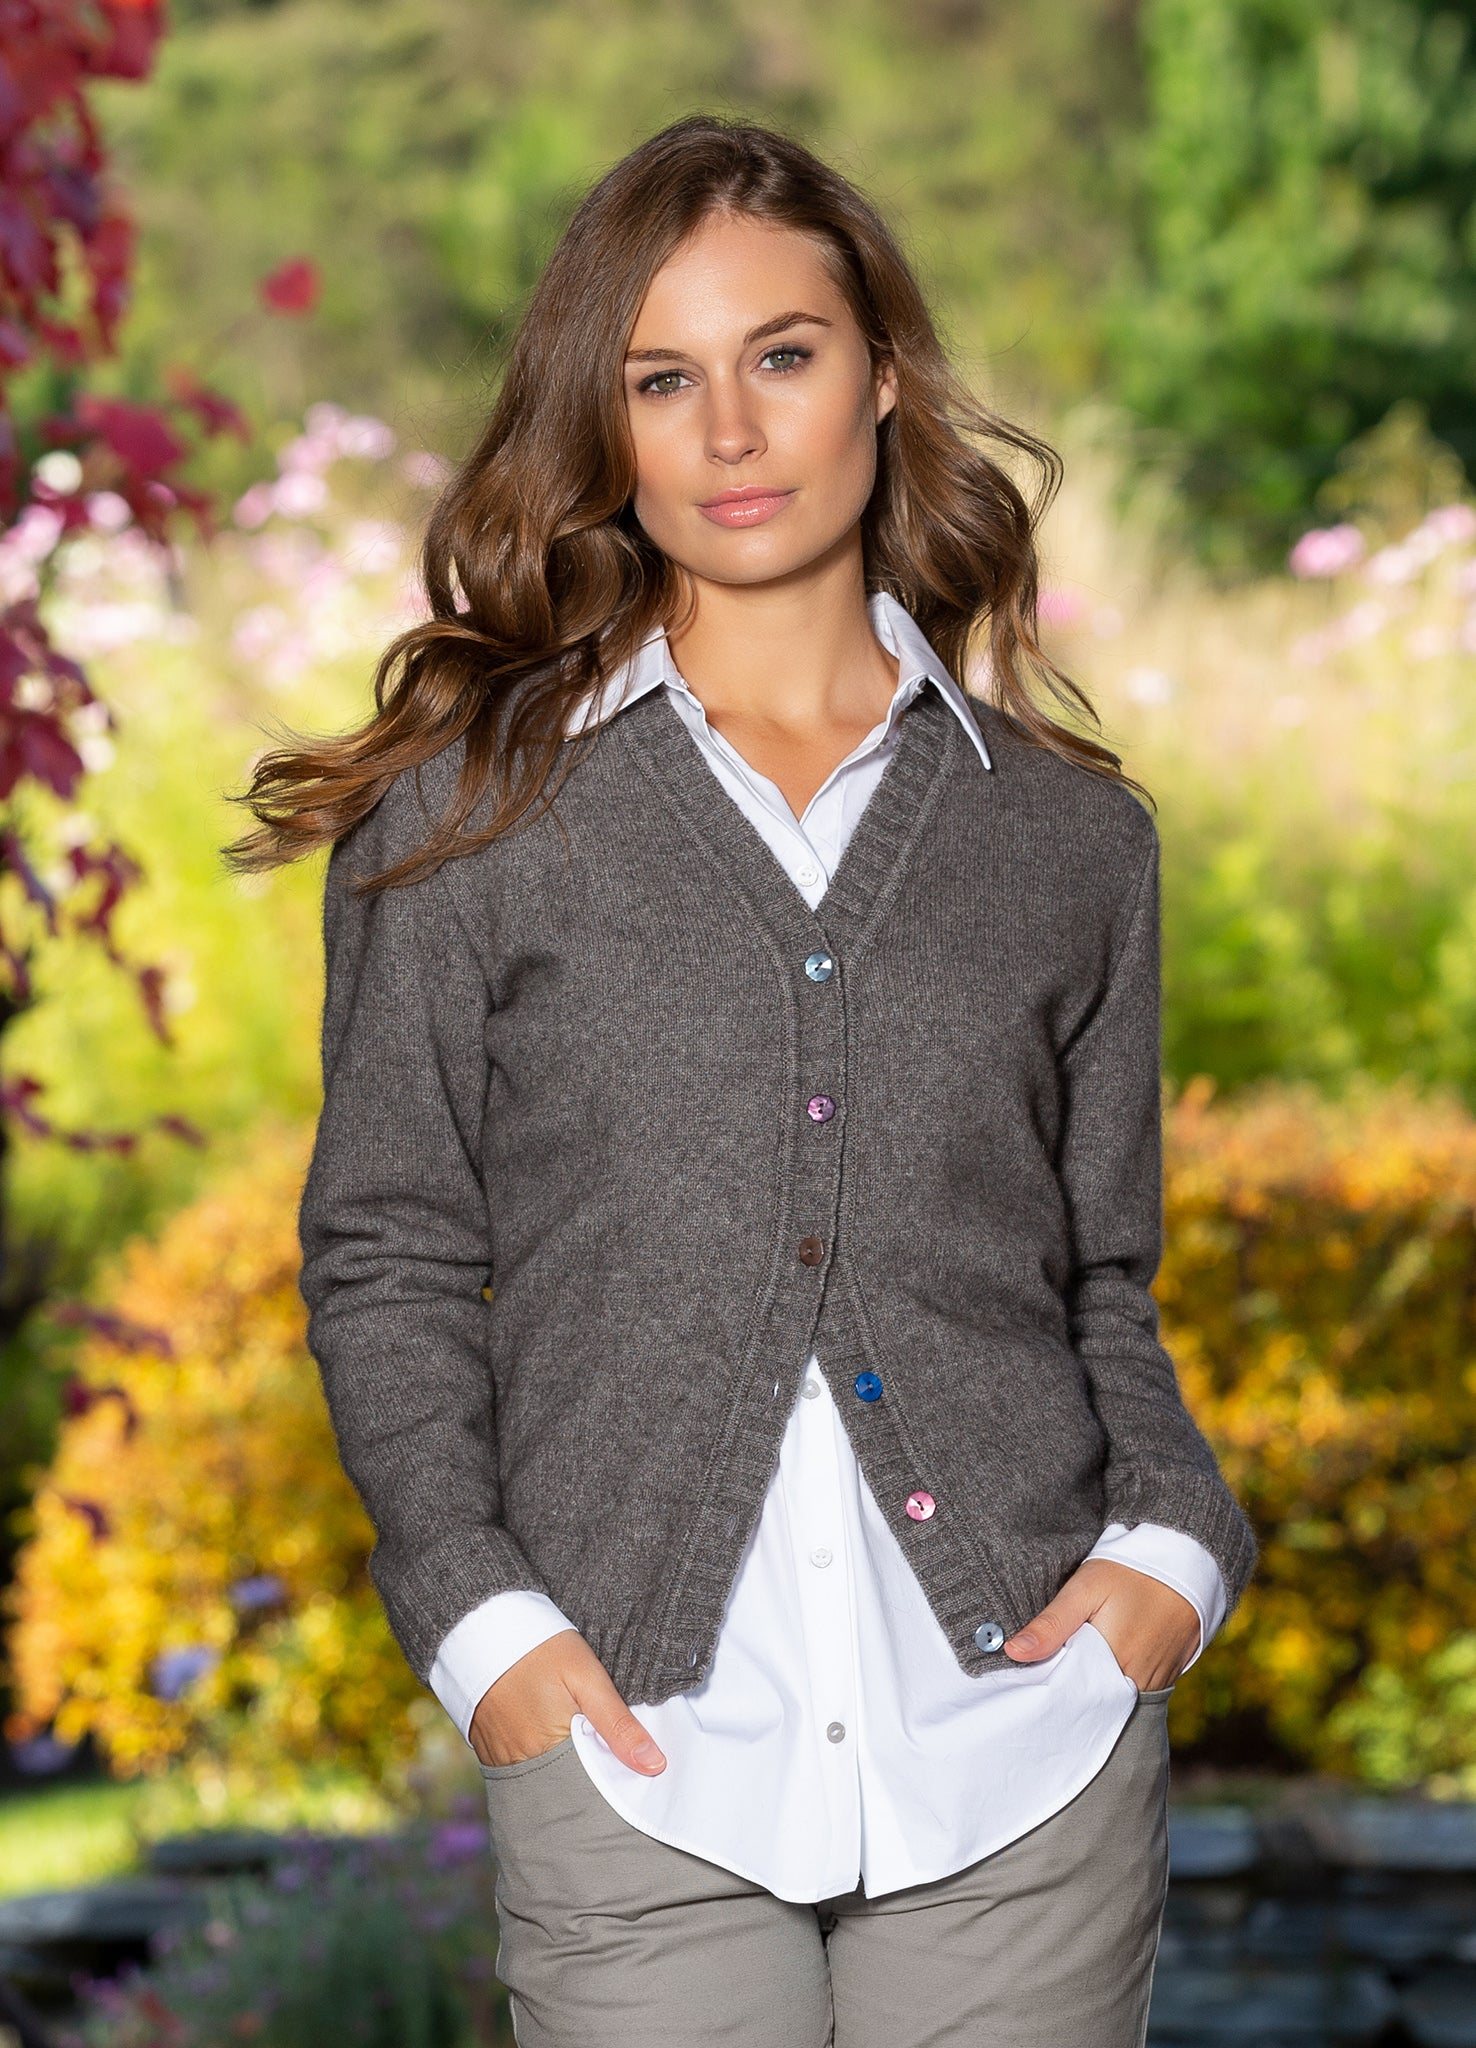 Wool/Possum Aries Cardigan - Shale Grey or Cornflower Blue